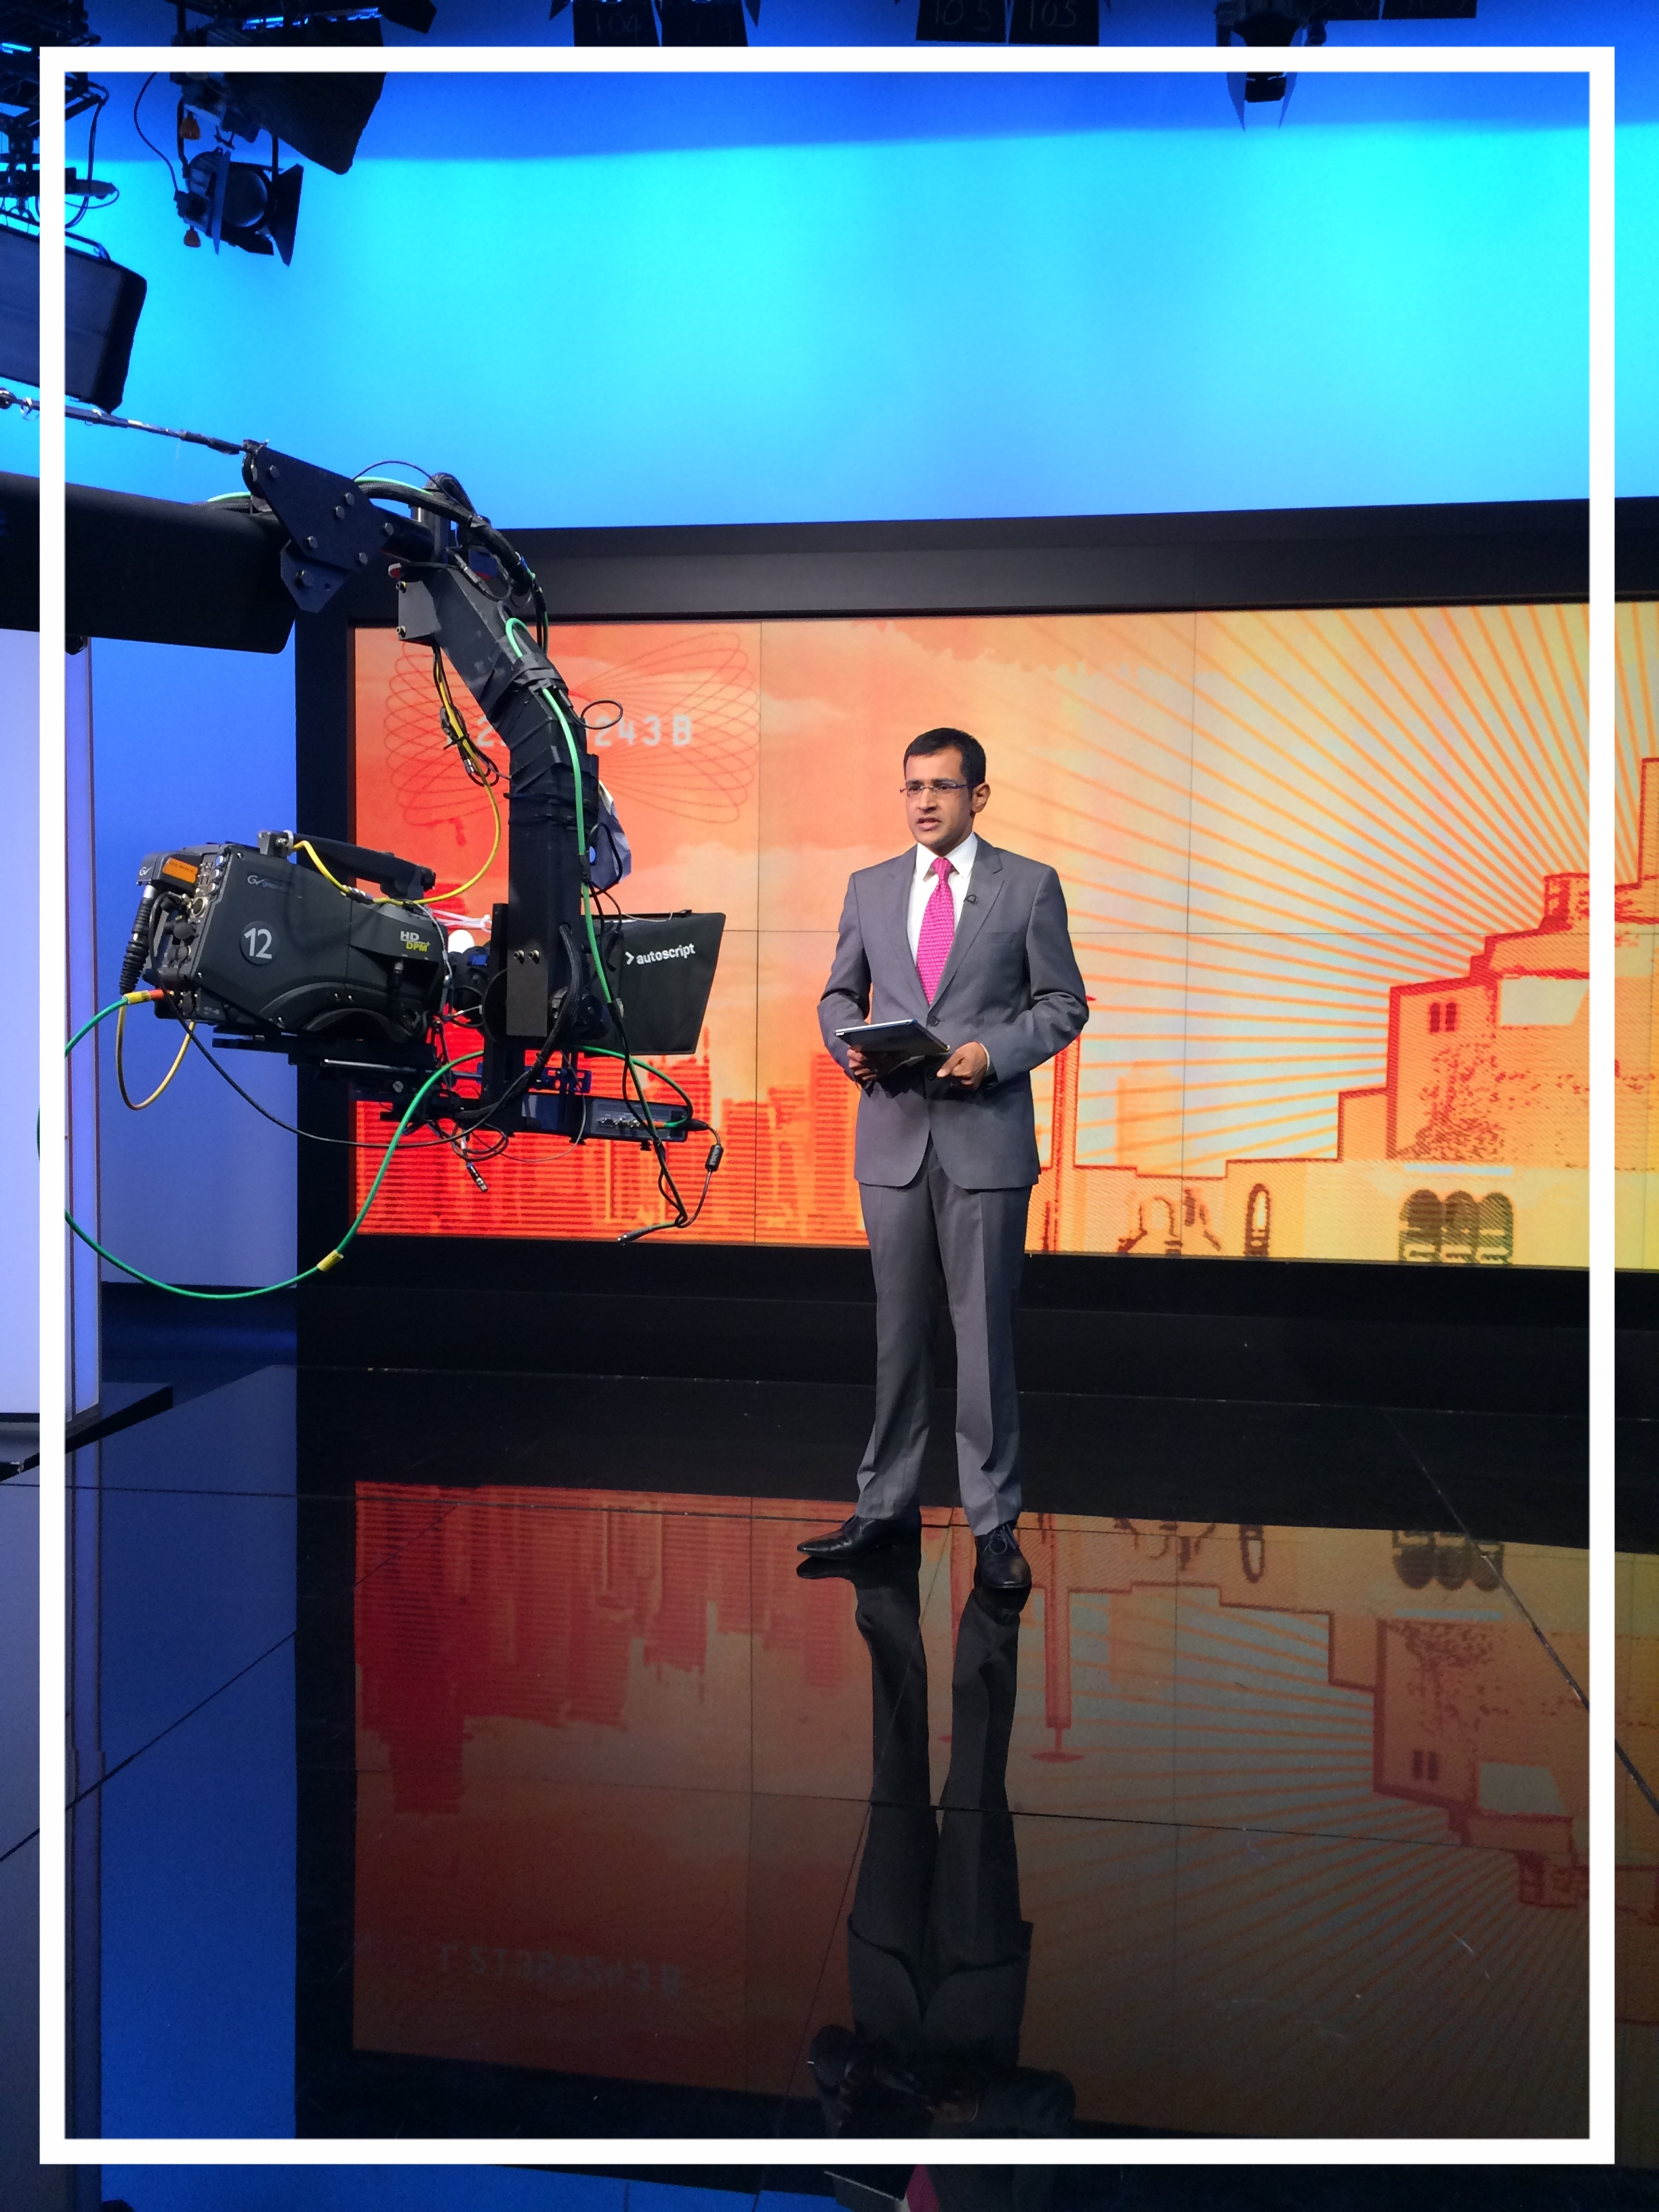 Presenting  Counting the Cost  from Studio 12 at Al Jazeera (Doha, 2014)